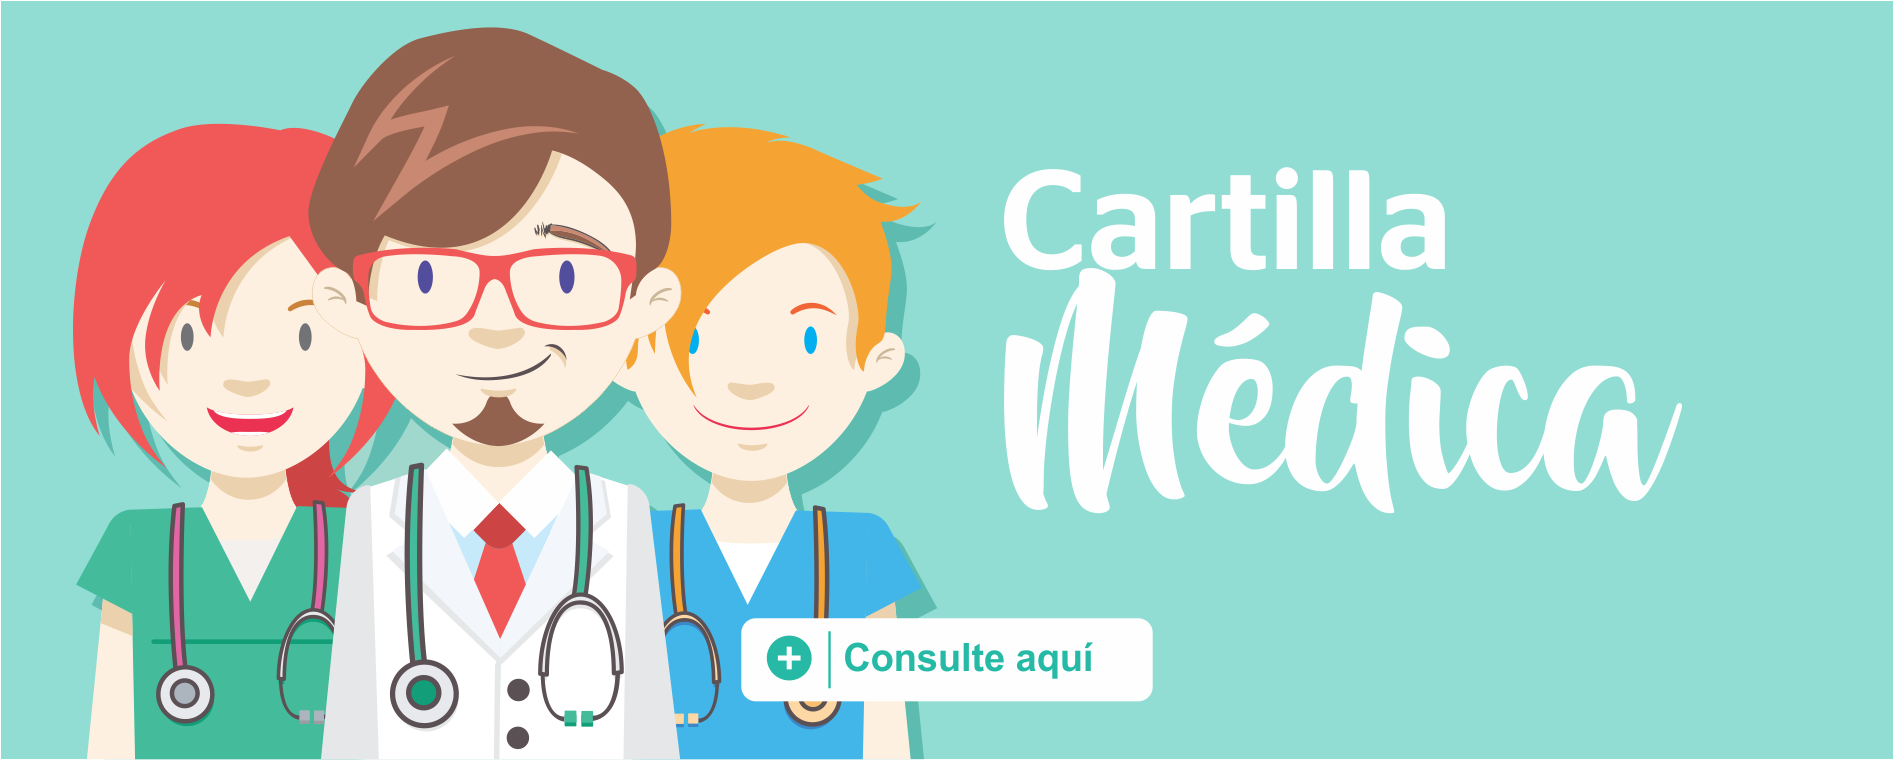 Cartilla Médica